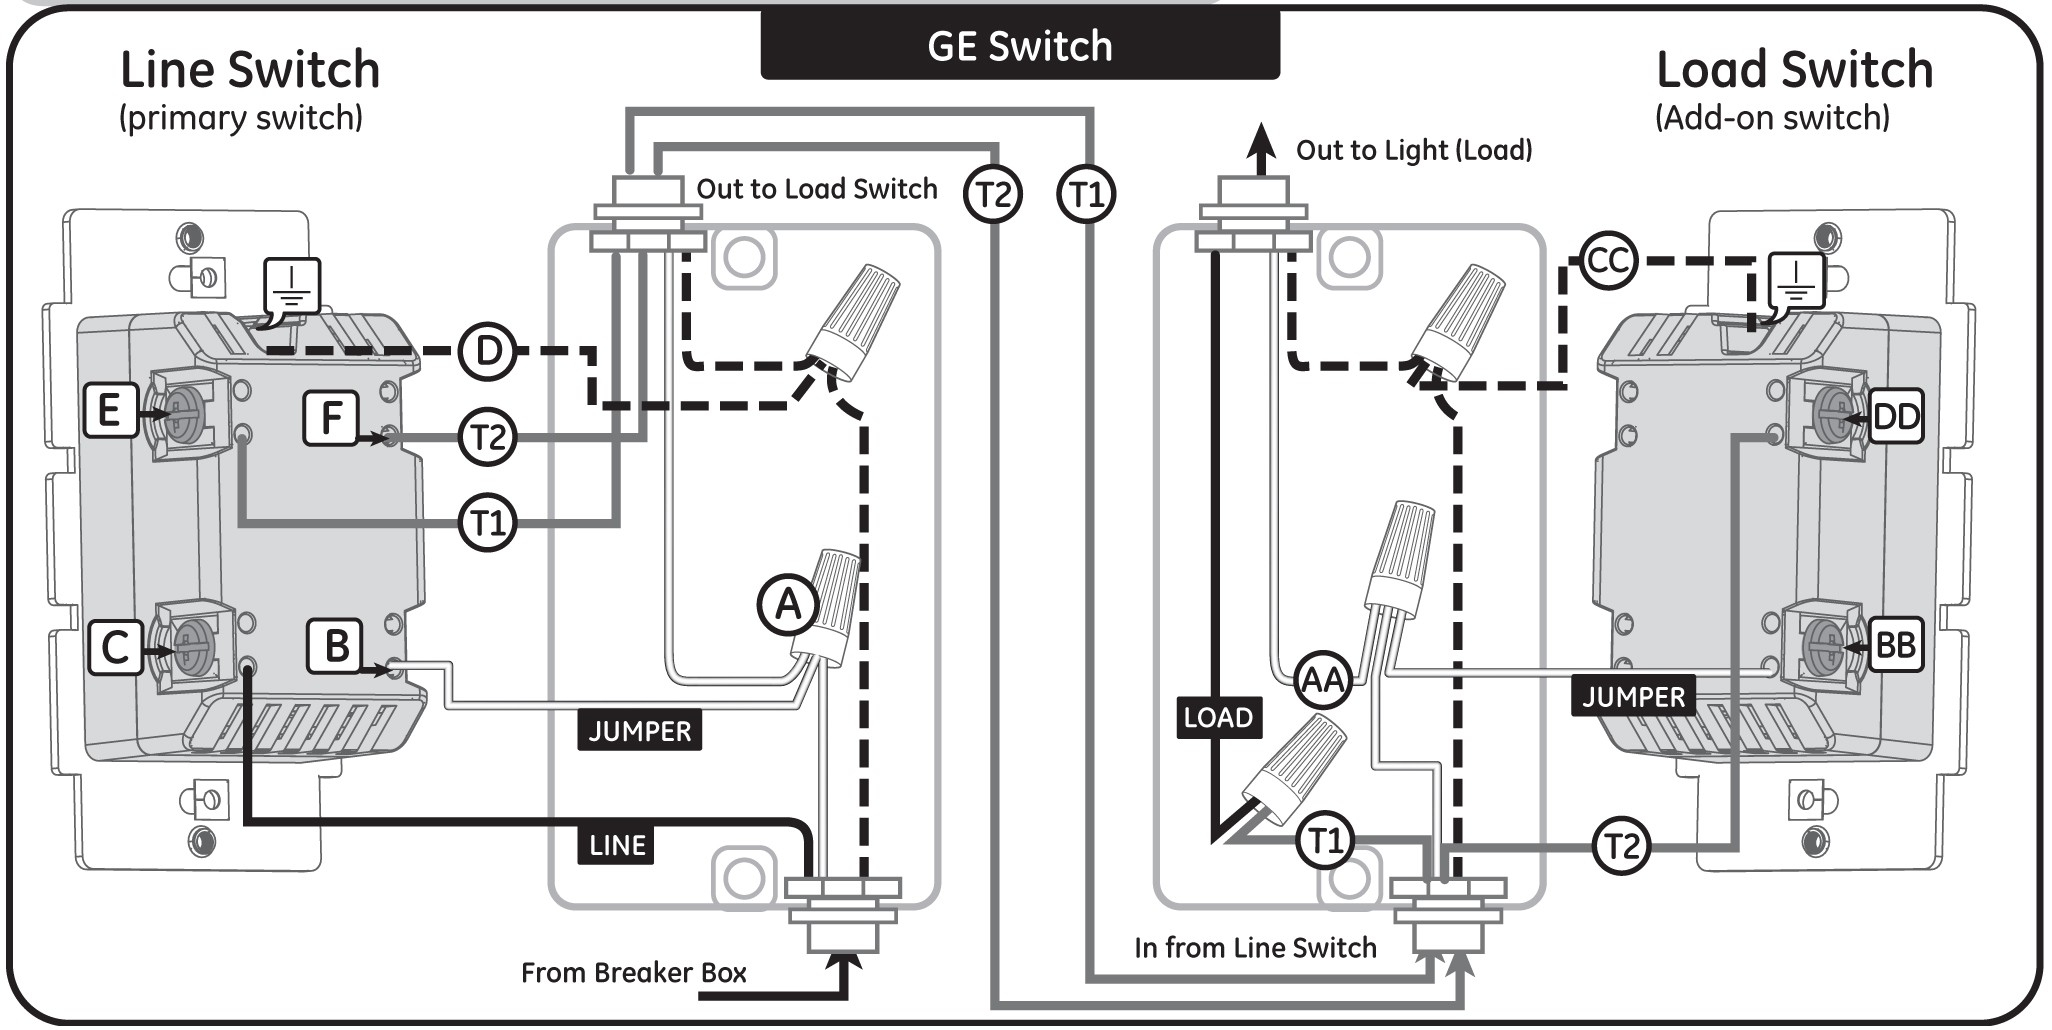 Ge Dimmer 3 Way Switch Wiring - Wiring Diagram LN4 on touch dimmer wiring diagram, lutron dimmer switches wiring diagram, 3 way dimmer switch installation, 3 way outlet wiring diagram, dimmer switch installation diagram, 3 way light wiring diagram, 3 way lamp wiring diagram, lutron three-way dimmer diagram, easy 3 way switch diagram,